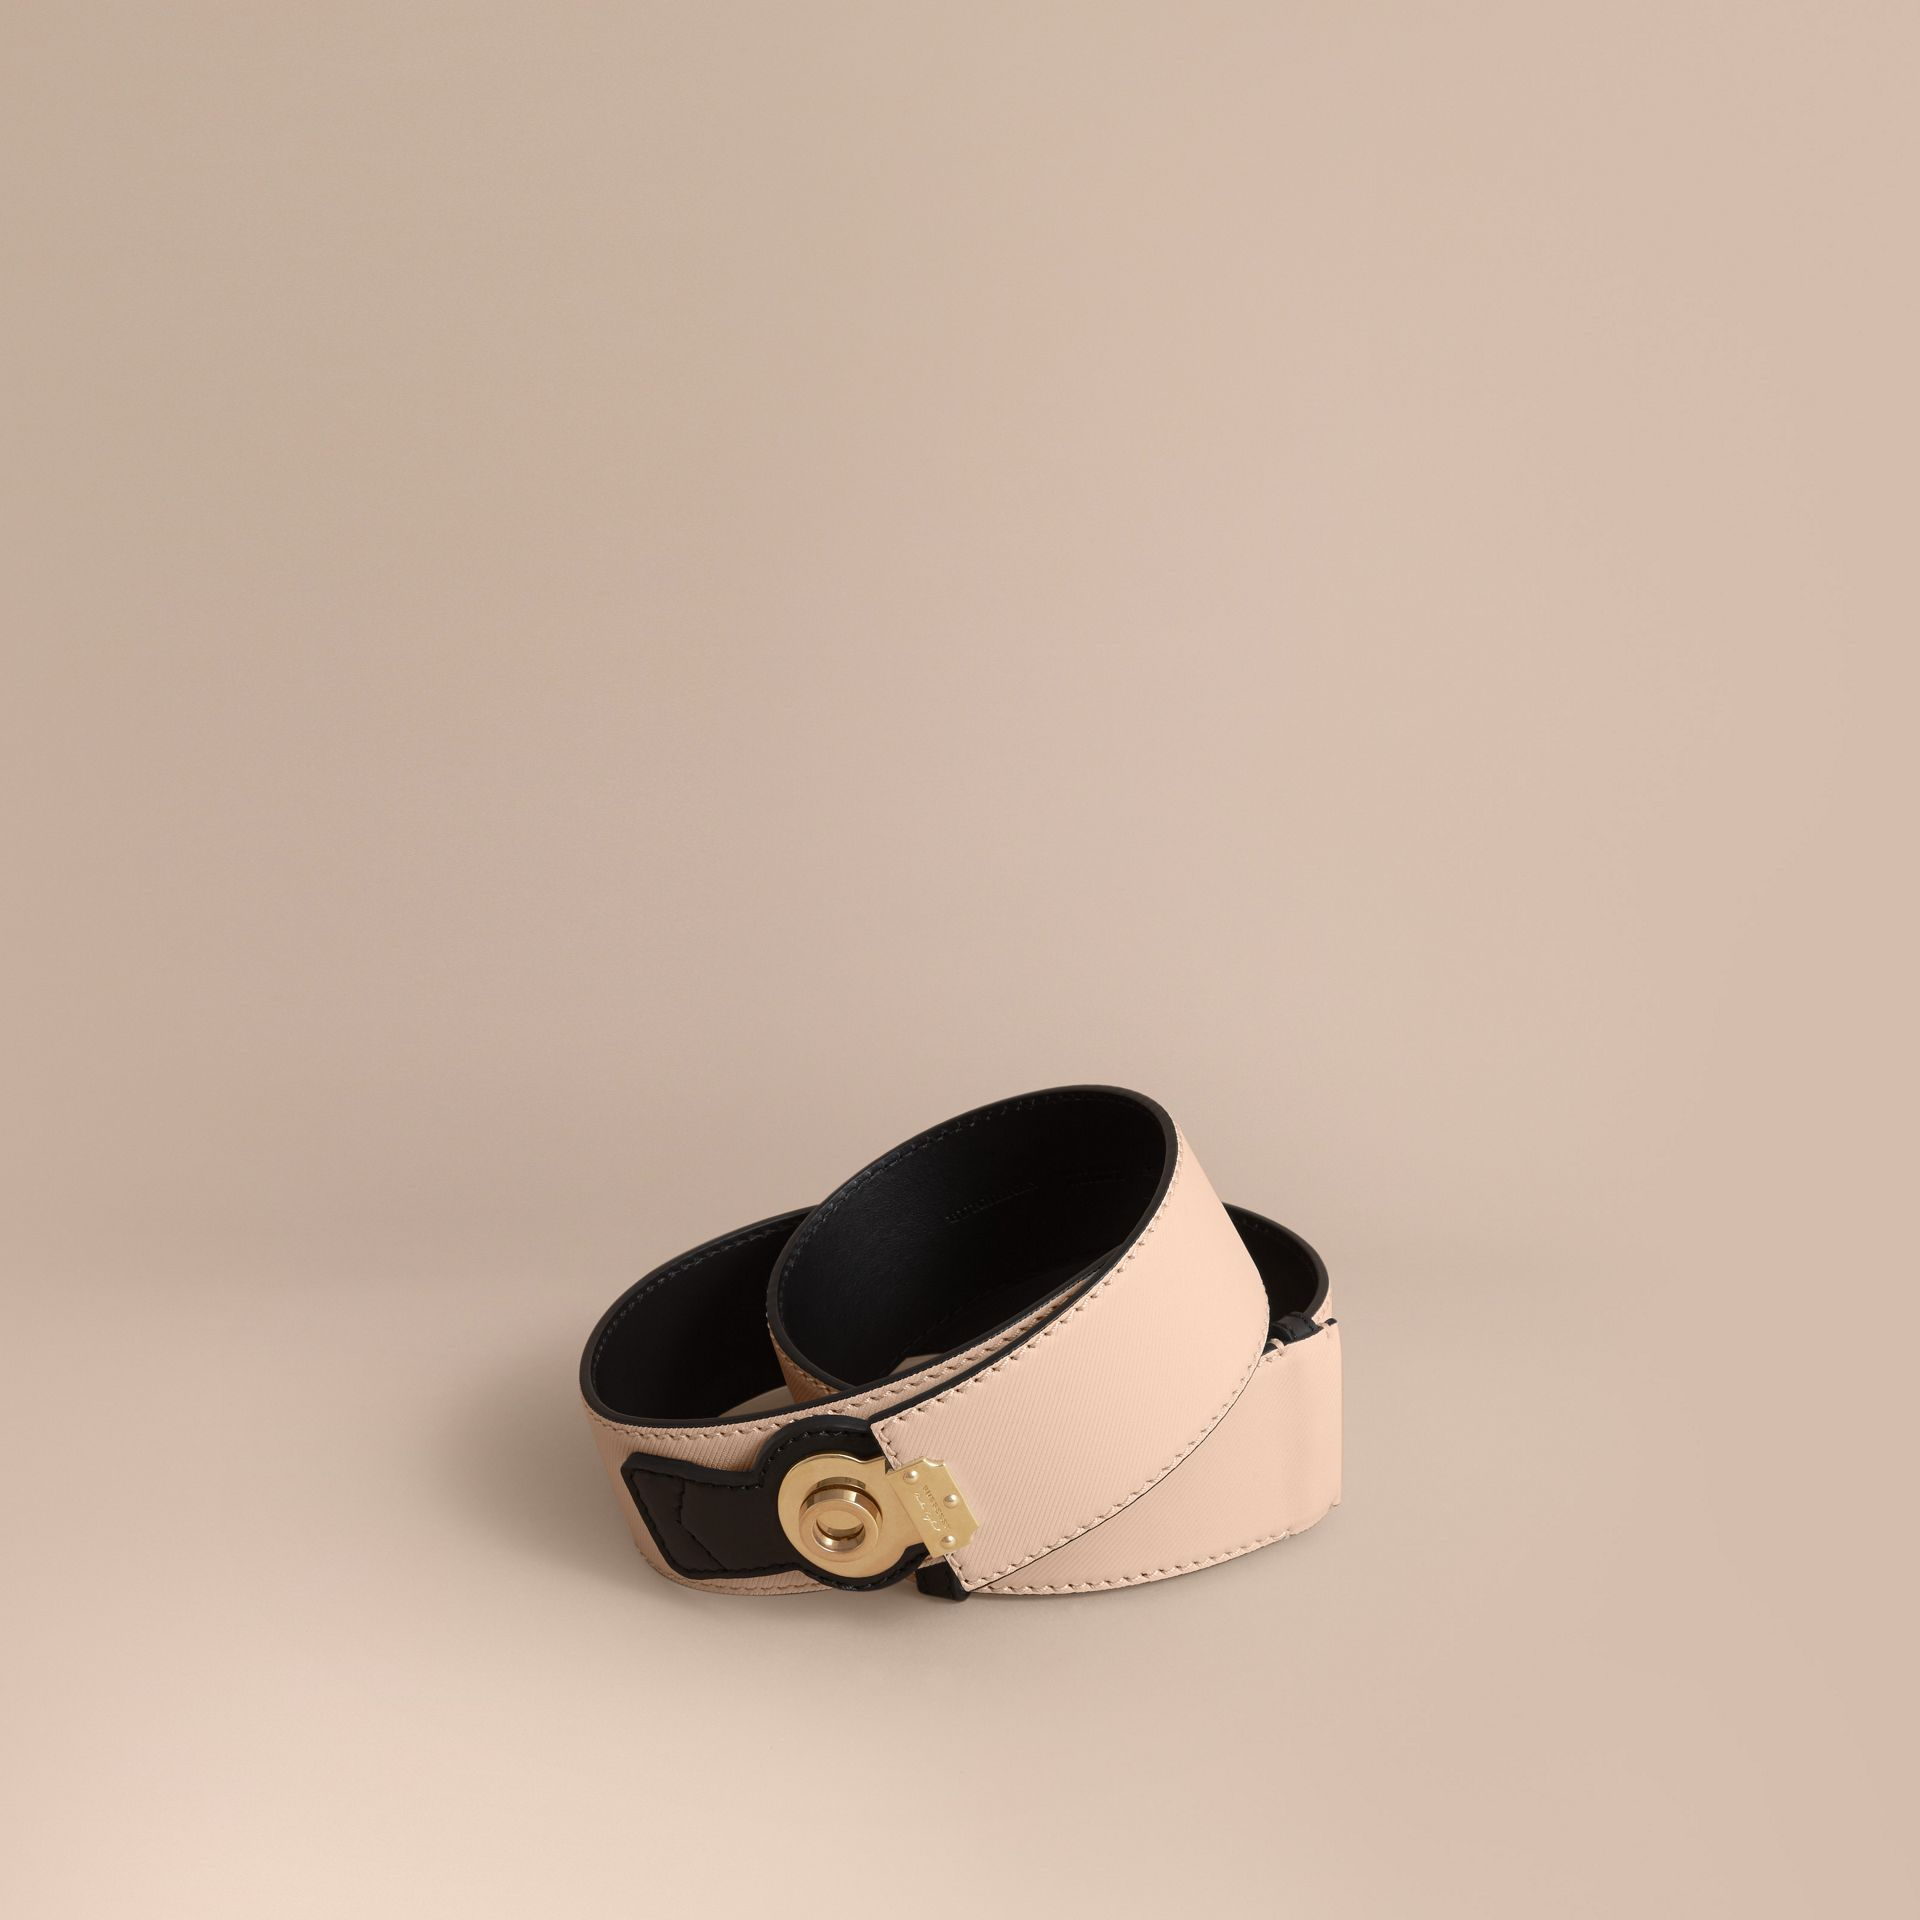 Two-tone Trench Leather Belt in Limestone/ Black - gallery image 1